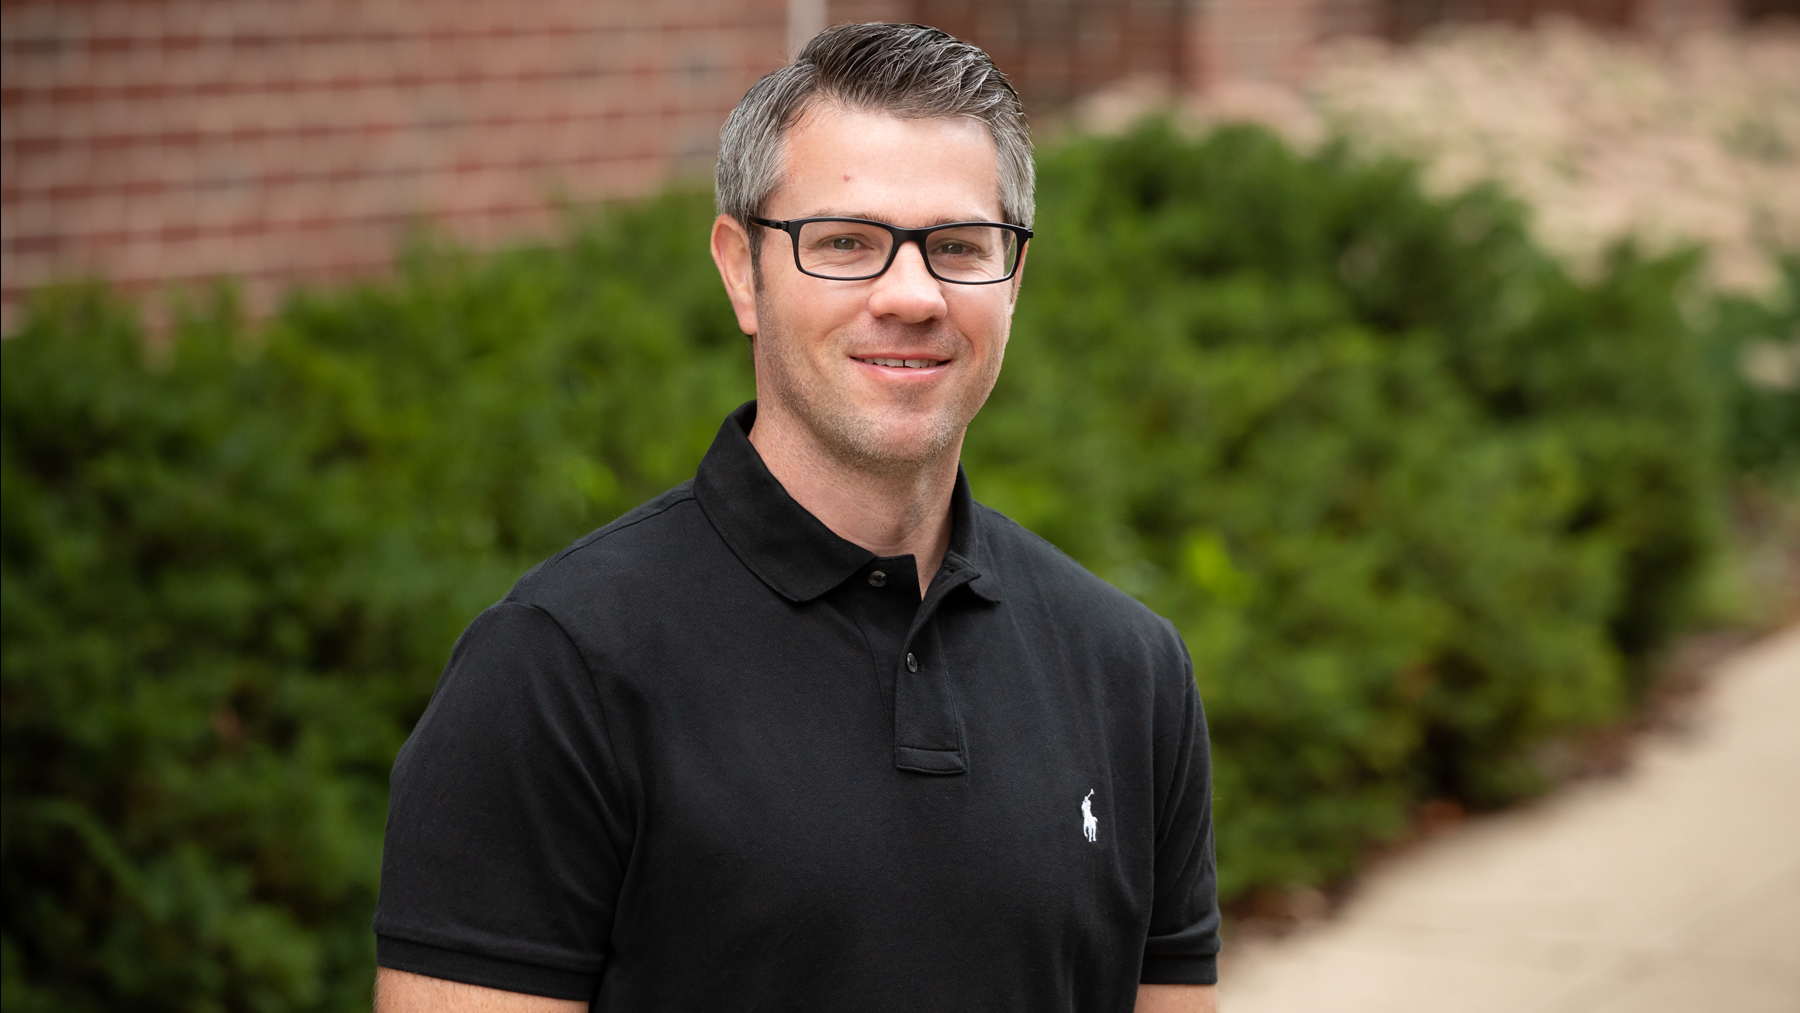 Kinesiology graduate student Brett Burrows was the first author of a study